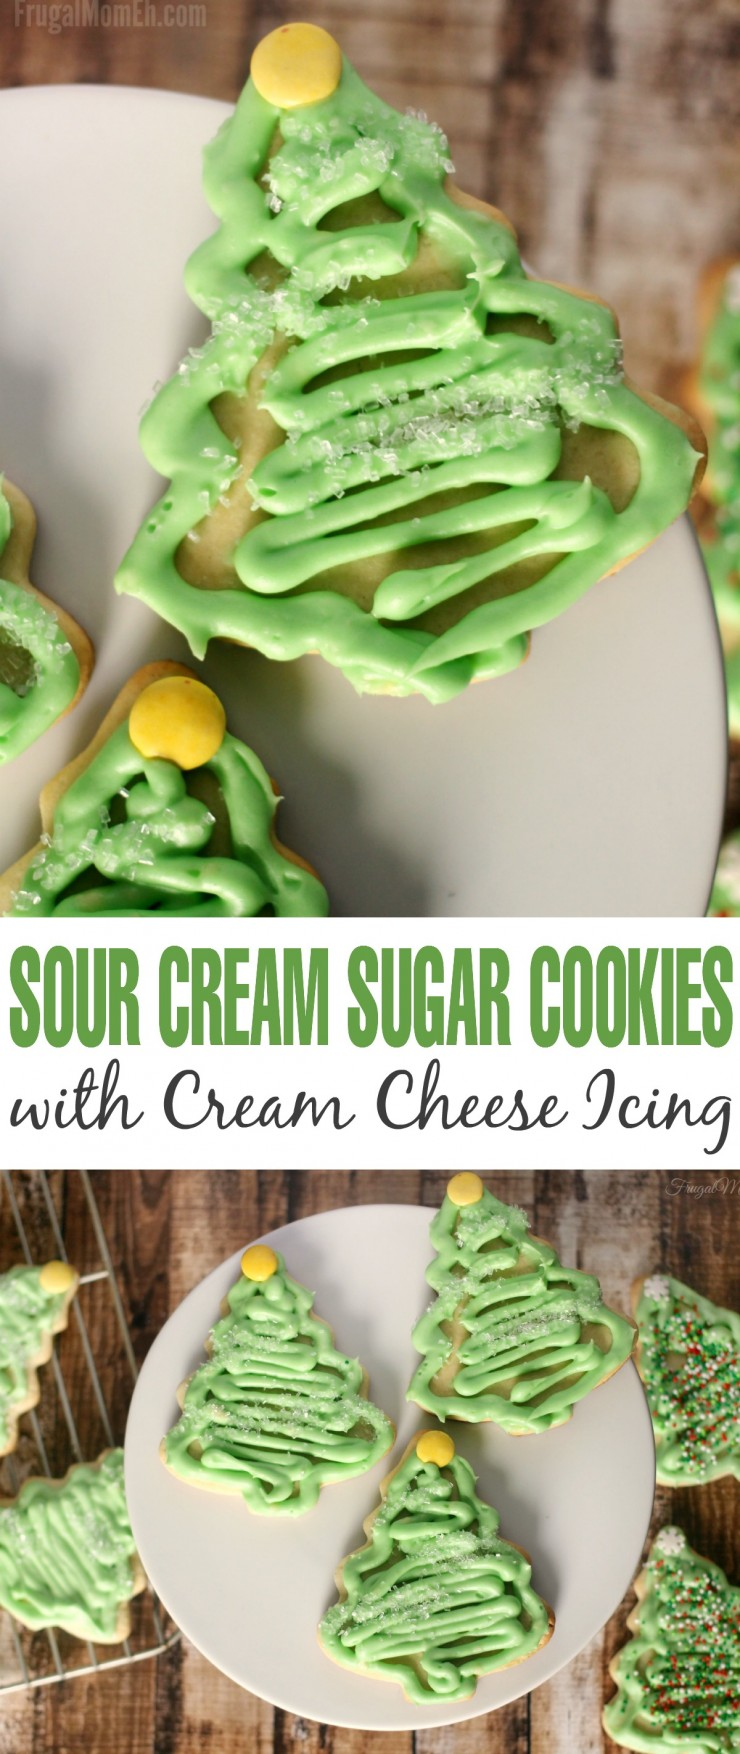 These Sour Cream Sugar Cookies with Cream Cheese Icing are an amazing Christmas dessert idea when paired with Christmas tree cookie cutters.